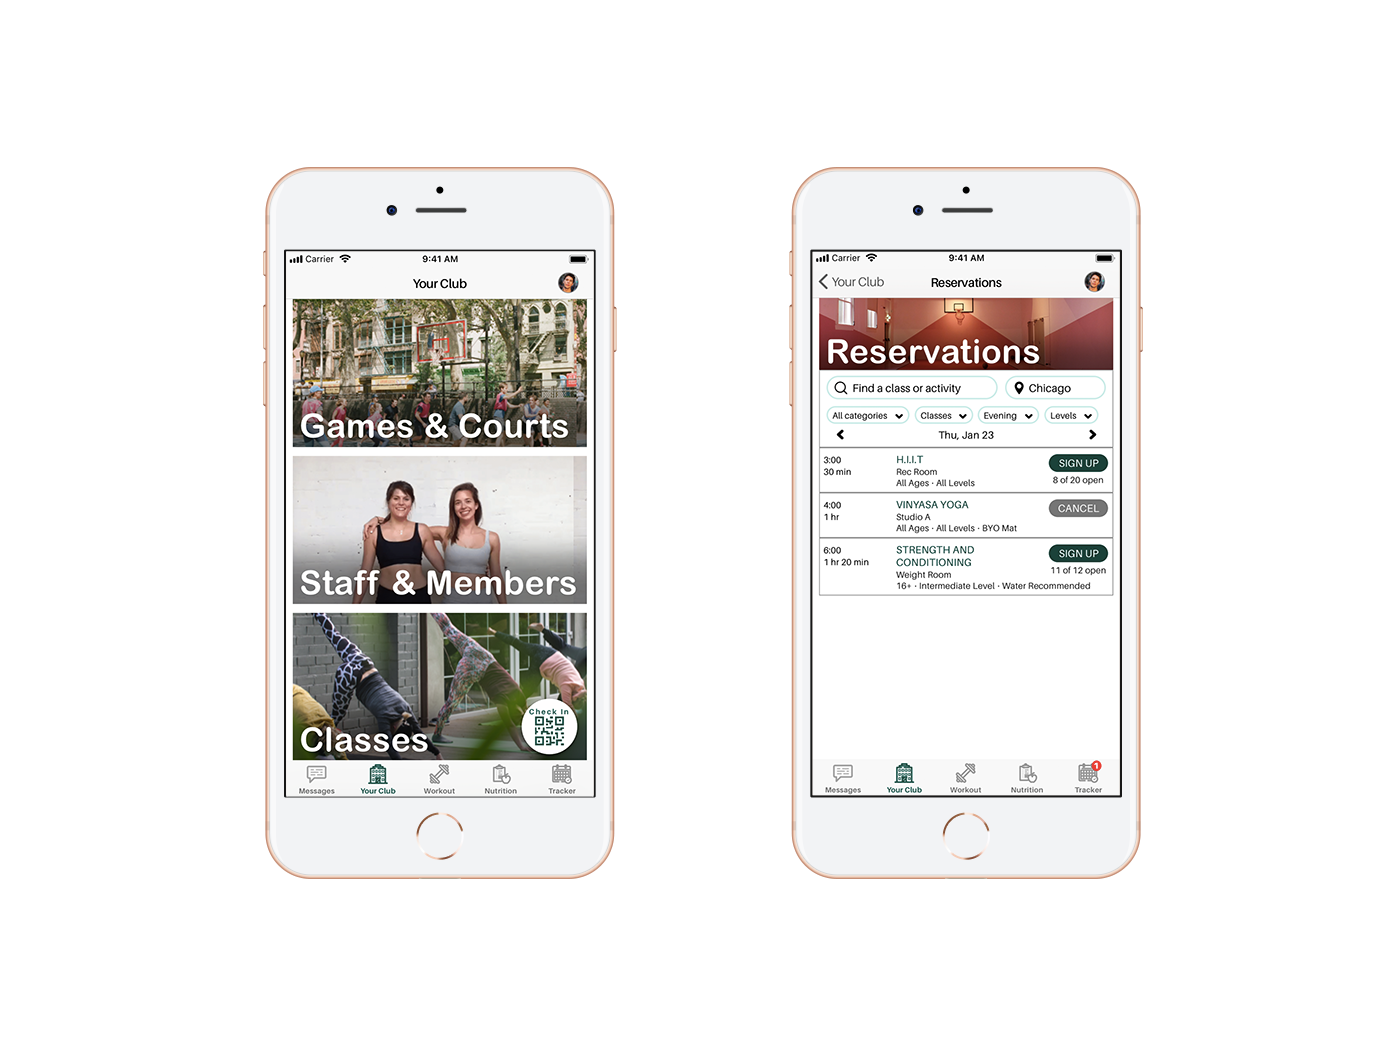 Two screens on iphones, the first is a menu of user functionalities at a gym, the second a gym class reservation module